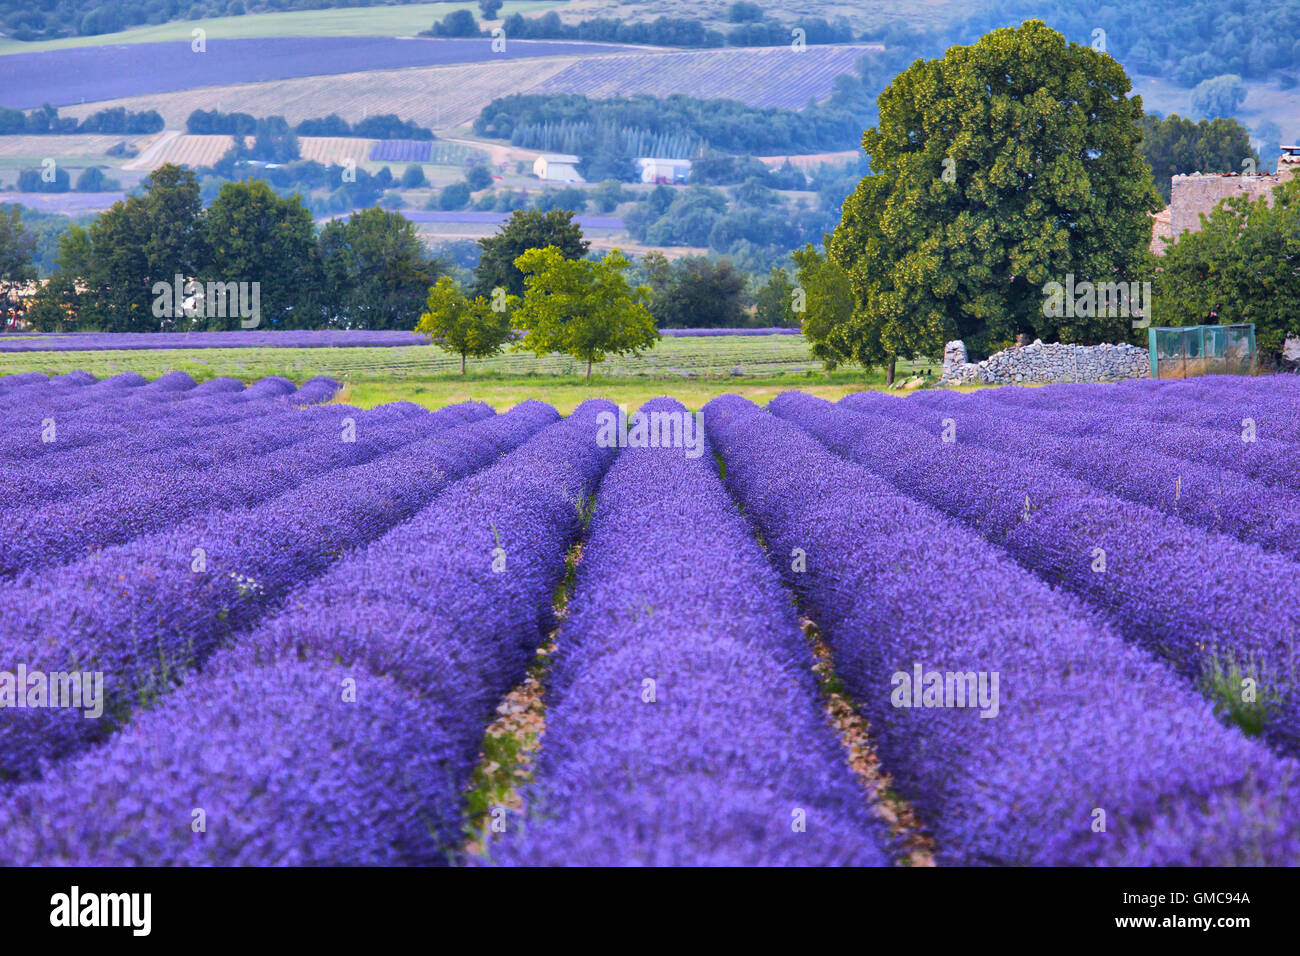 Lavander fields in Provence, France Stock Photo